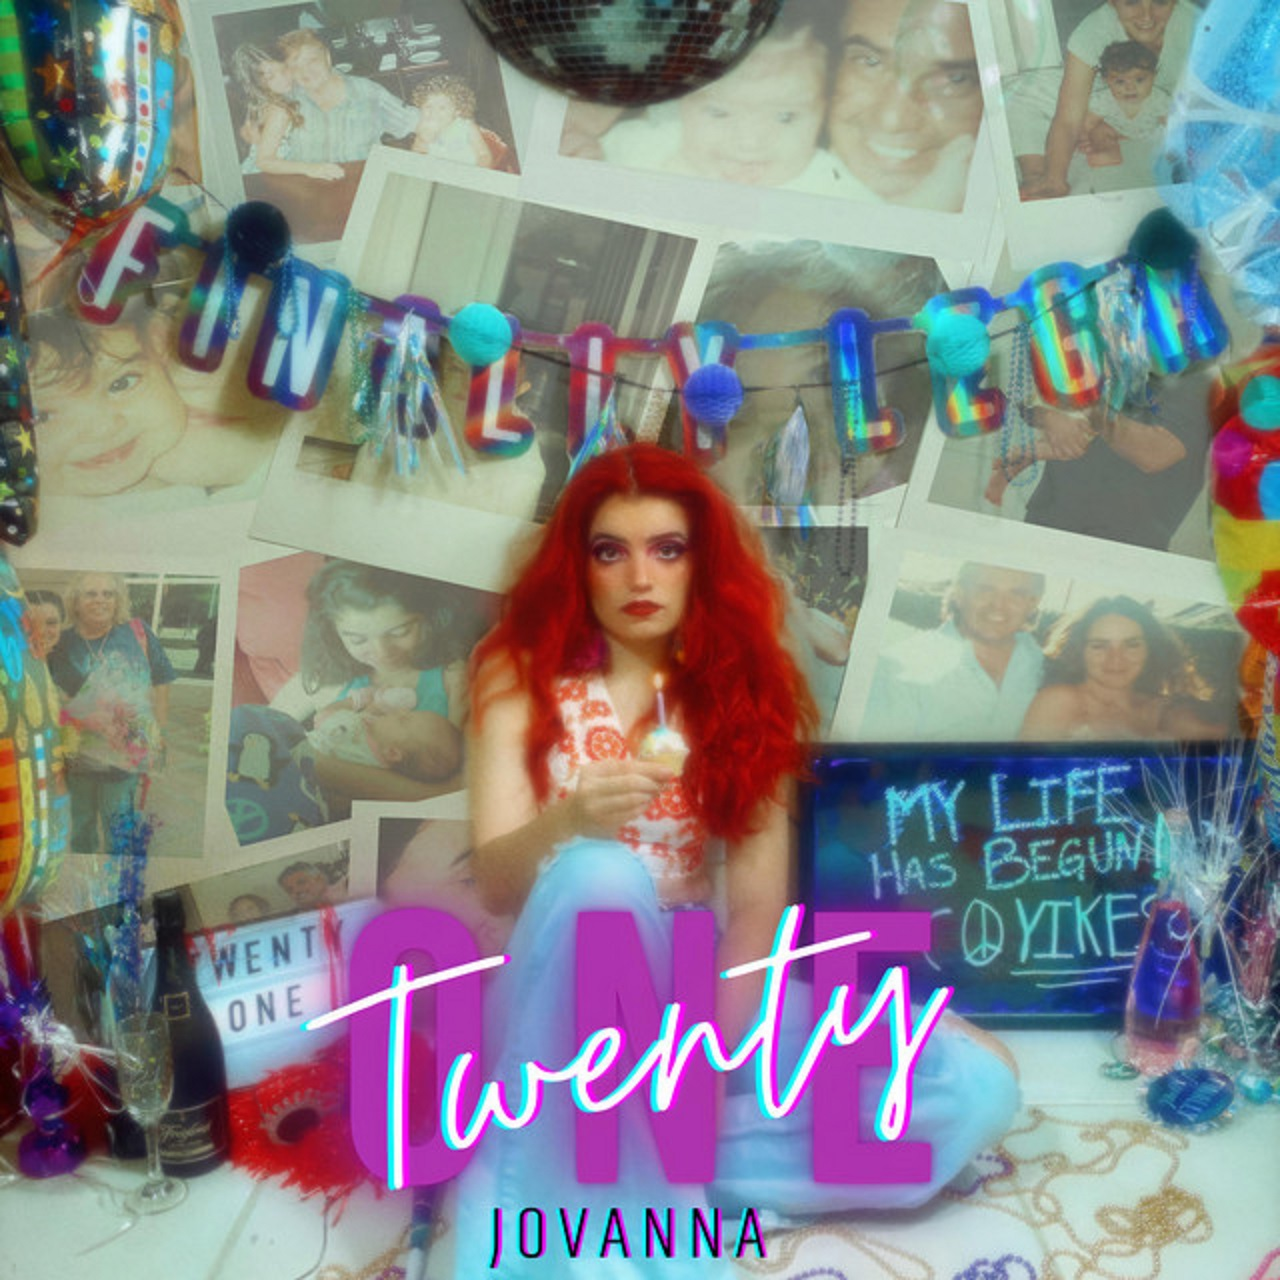 """Read more about the article The Daily Feature: J0VANNA's """"TwentyOne"""" Is a Funky, Upbeat Tune With a Relatable Message"""